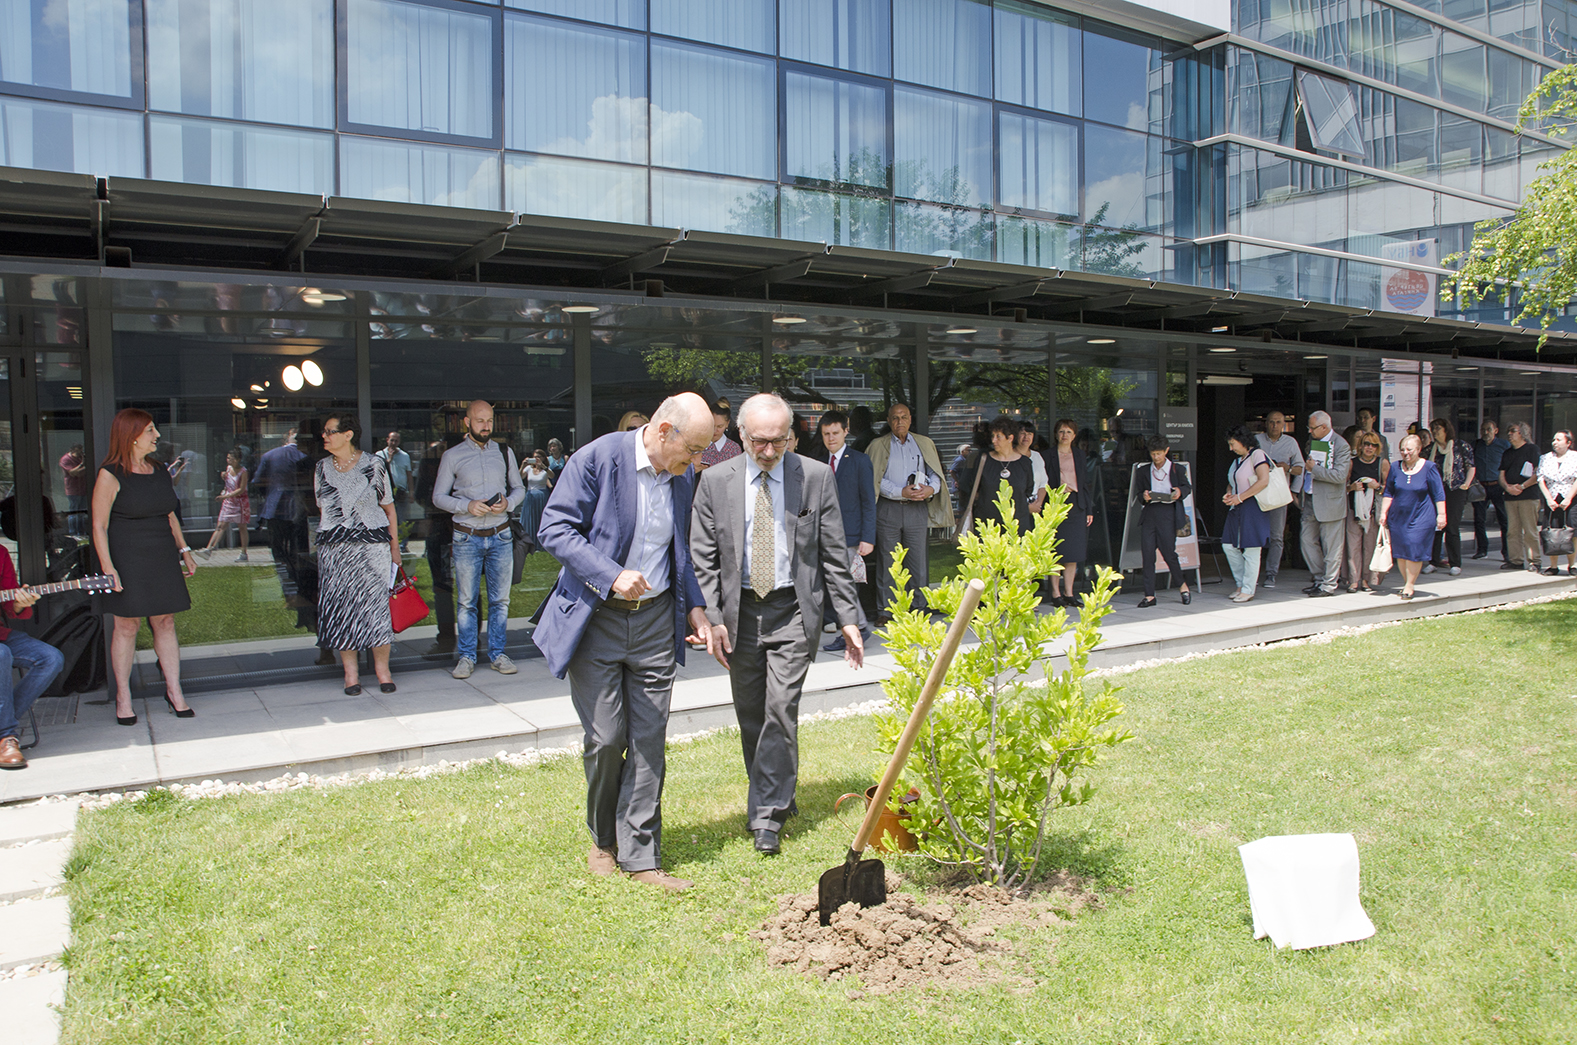 The planting of the magnolia tree in honor of Dimitar Peshev